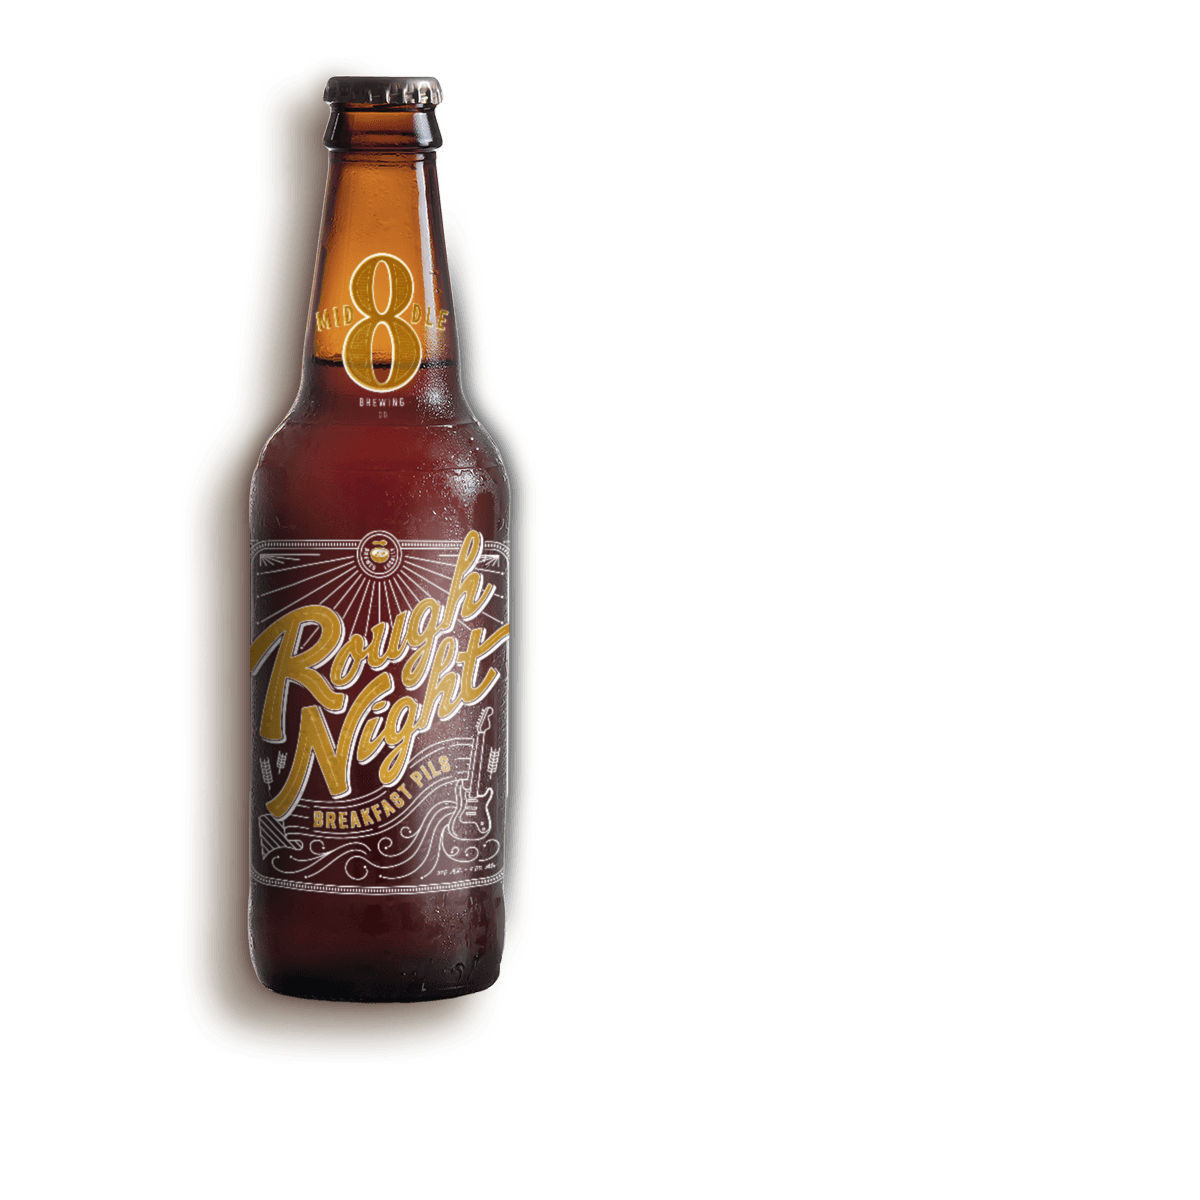 Branding and package design for microbrew